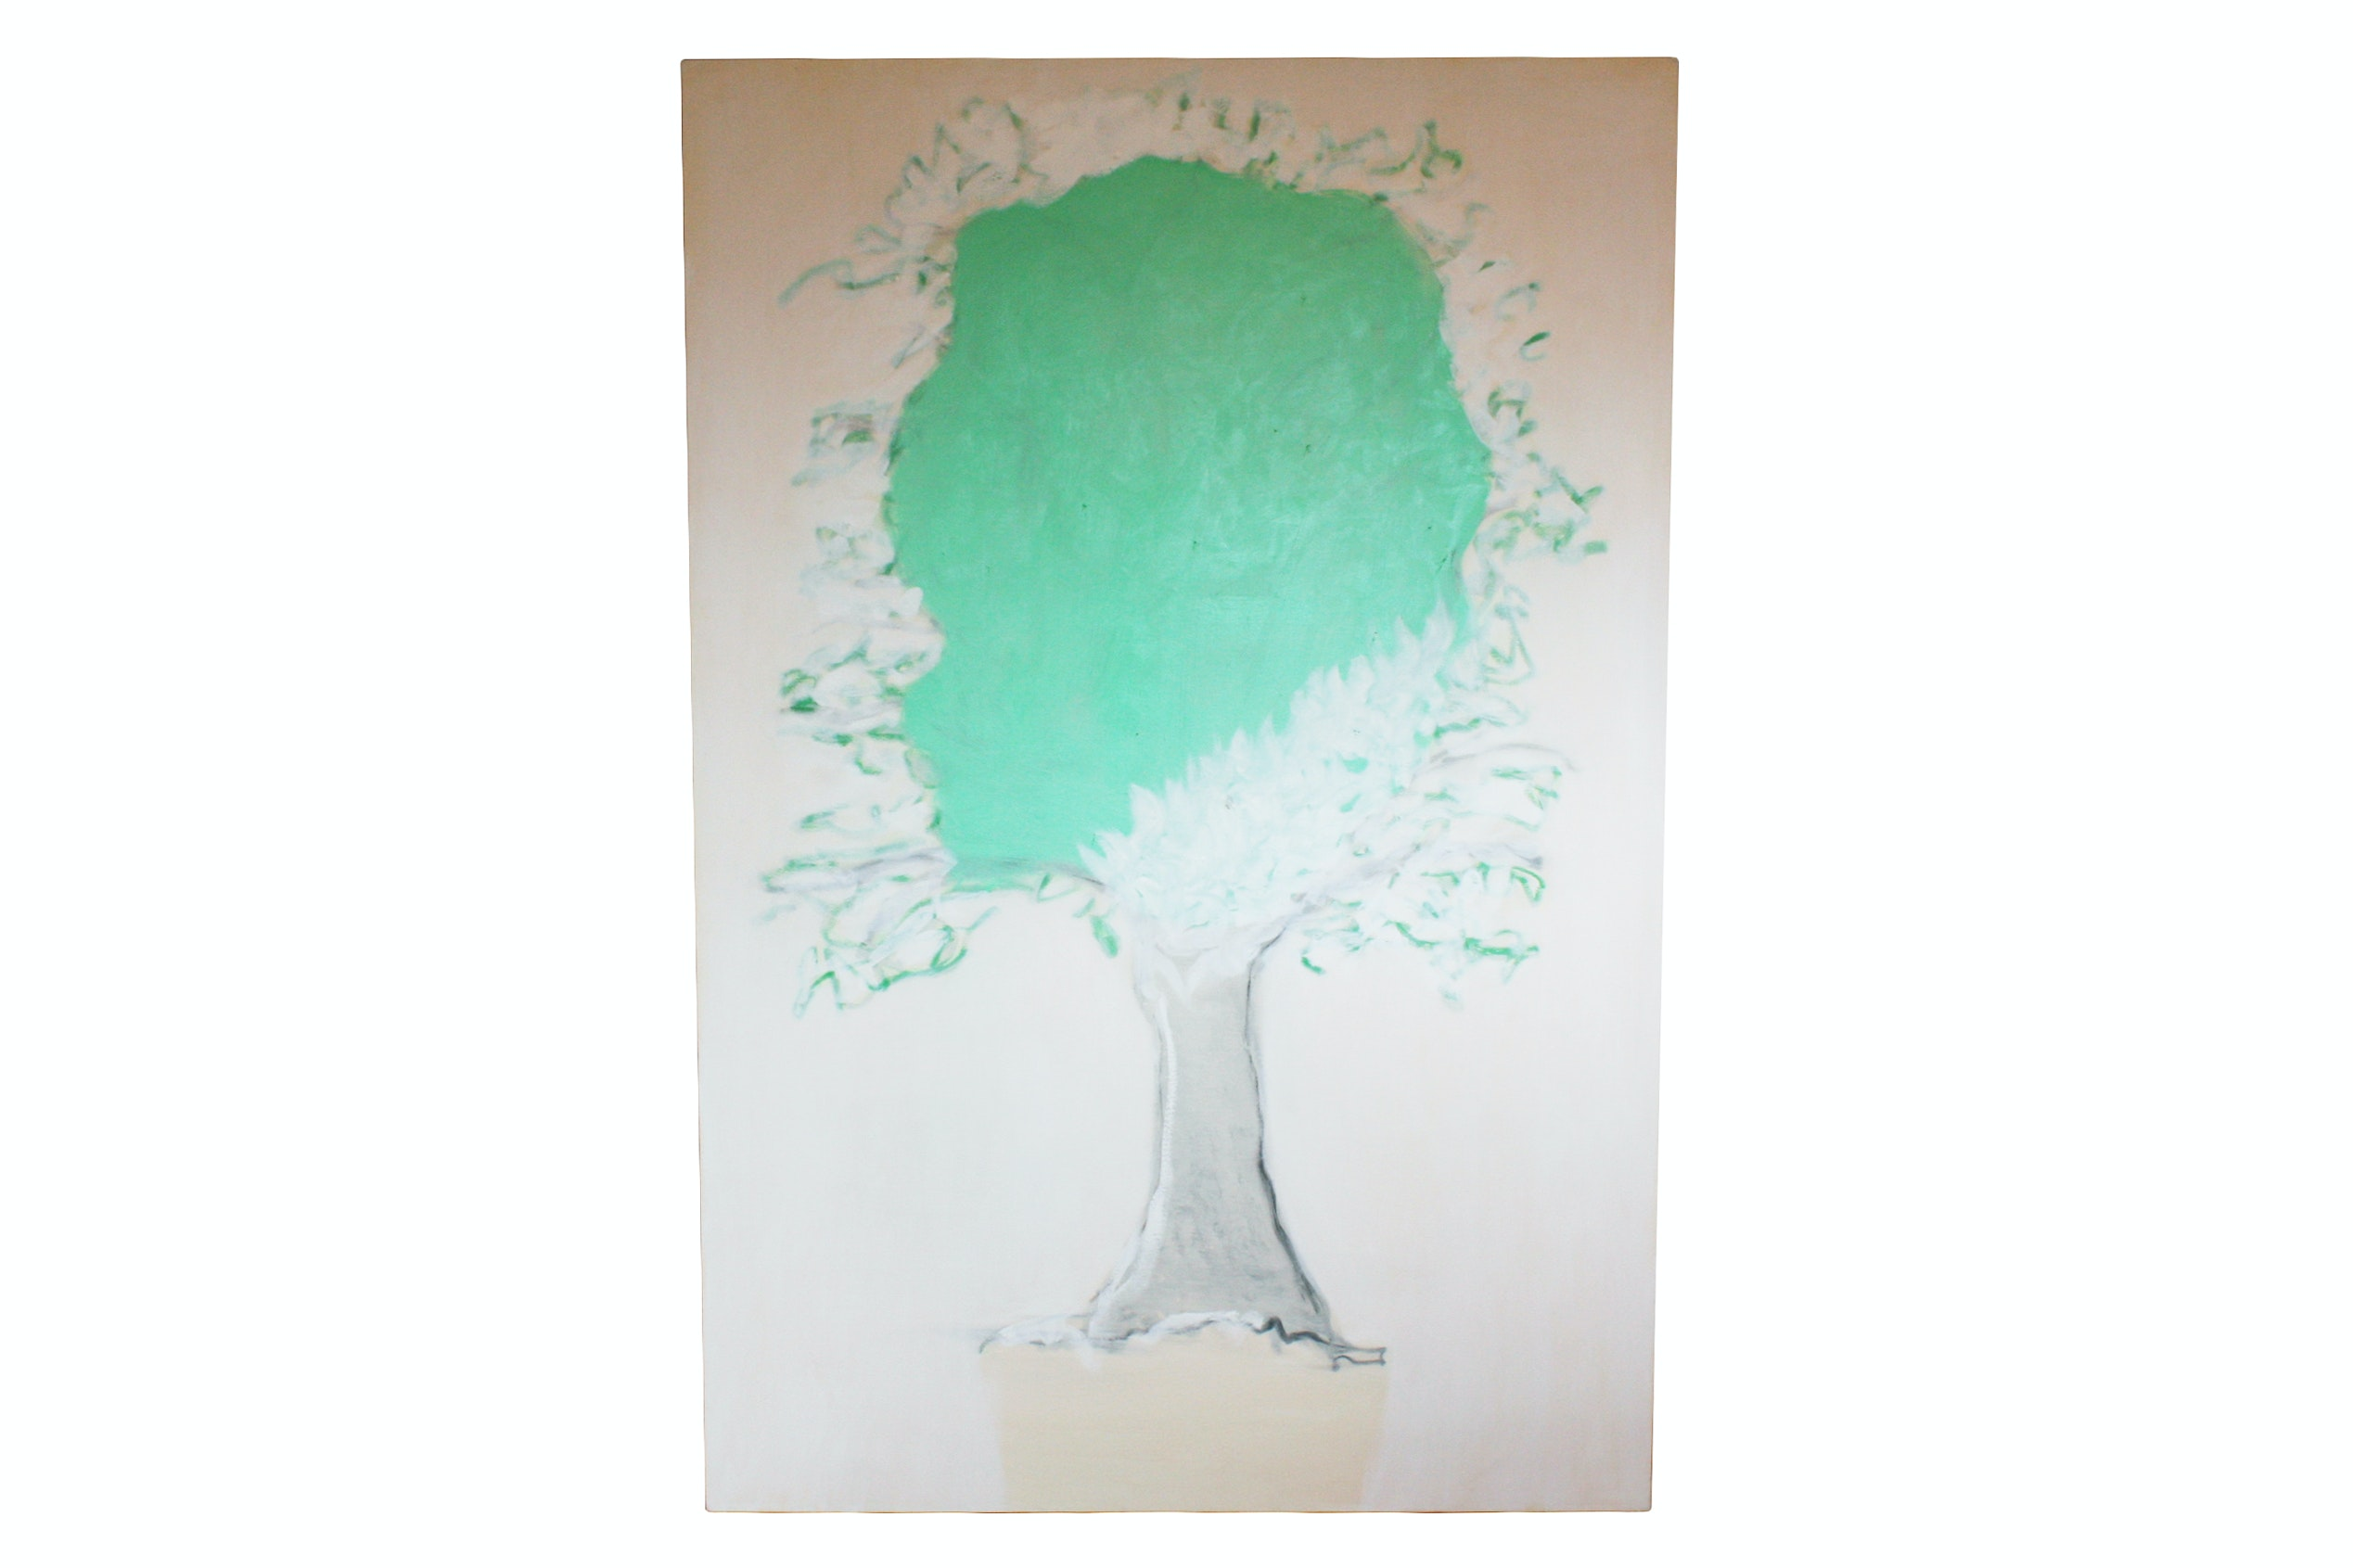 Acrylic Painting of a Tree